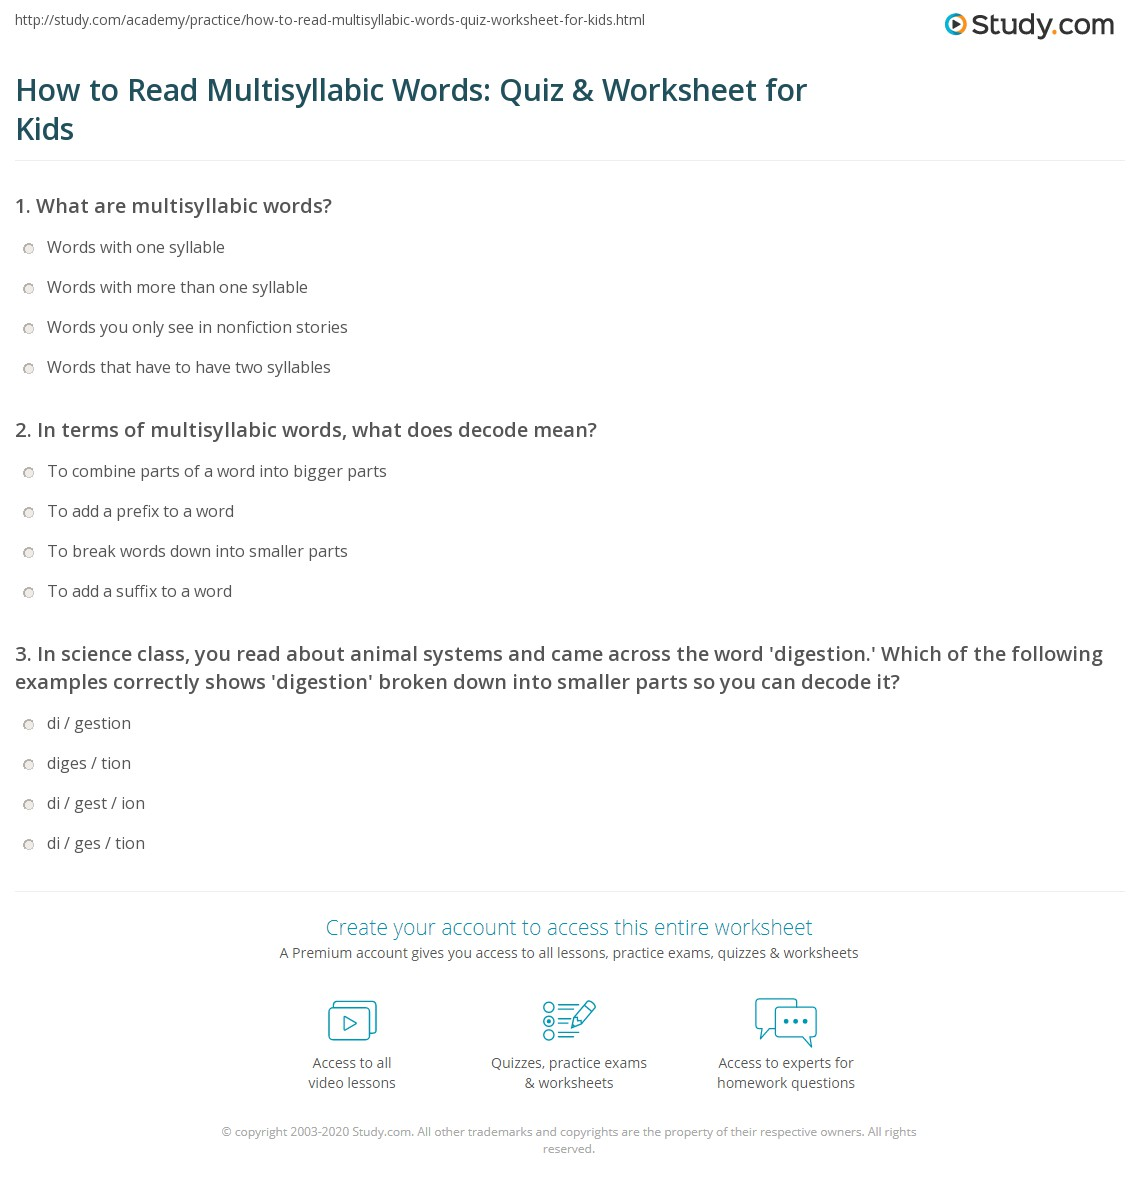 How To Read Multisyllabic Words Quiz Amp Worksheet For Kids